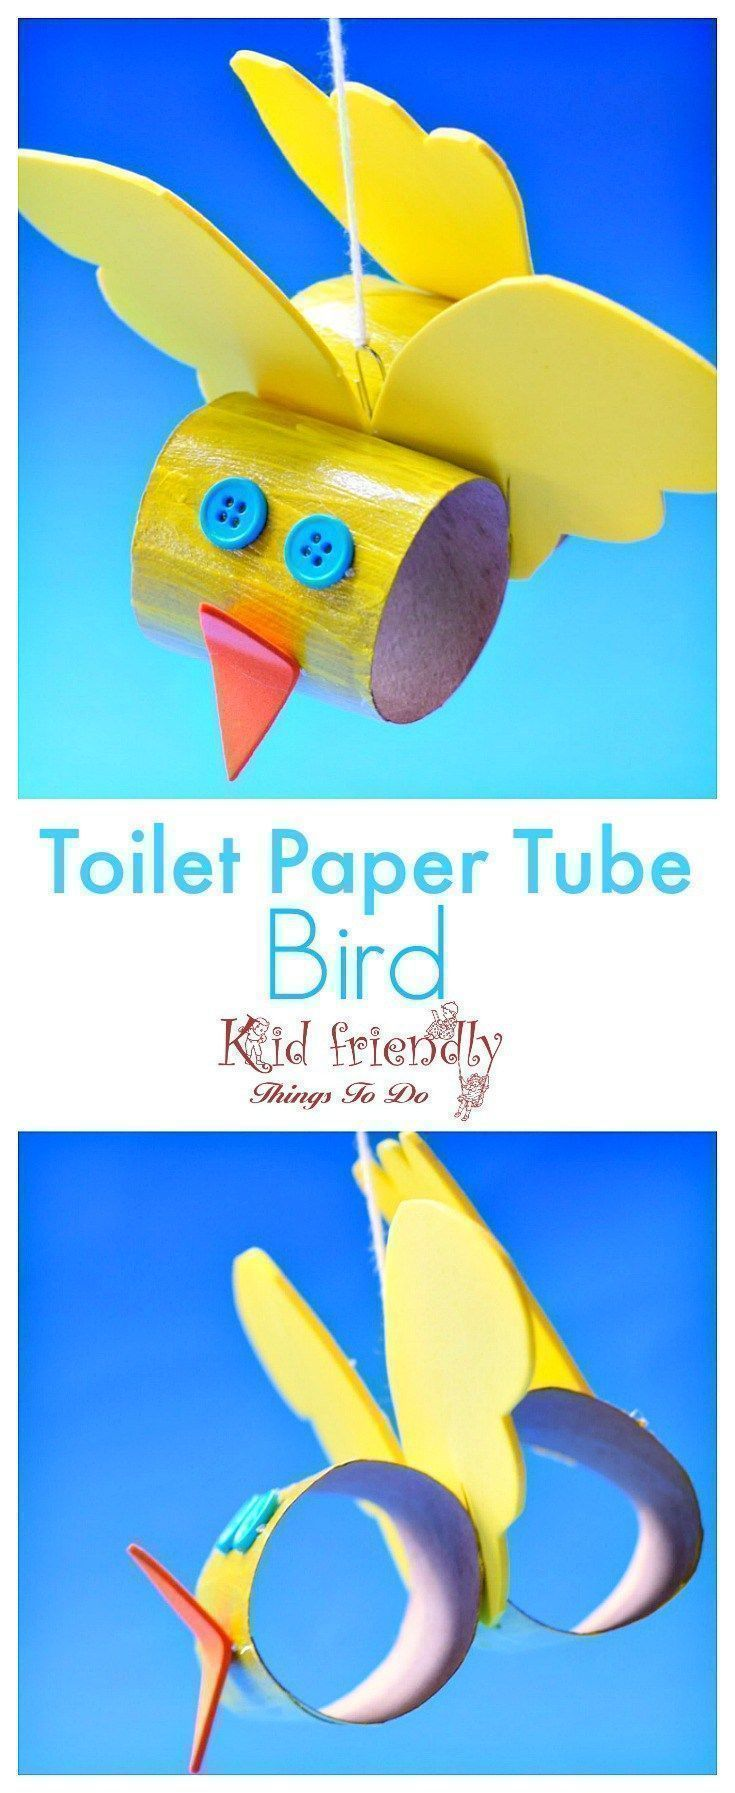 Make A Cute Toilet Paper Tube Bird Craft With Kids Easy To Make What A Cute Craft For Spring And Summer Make With Preschool Or Older Kids